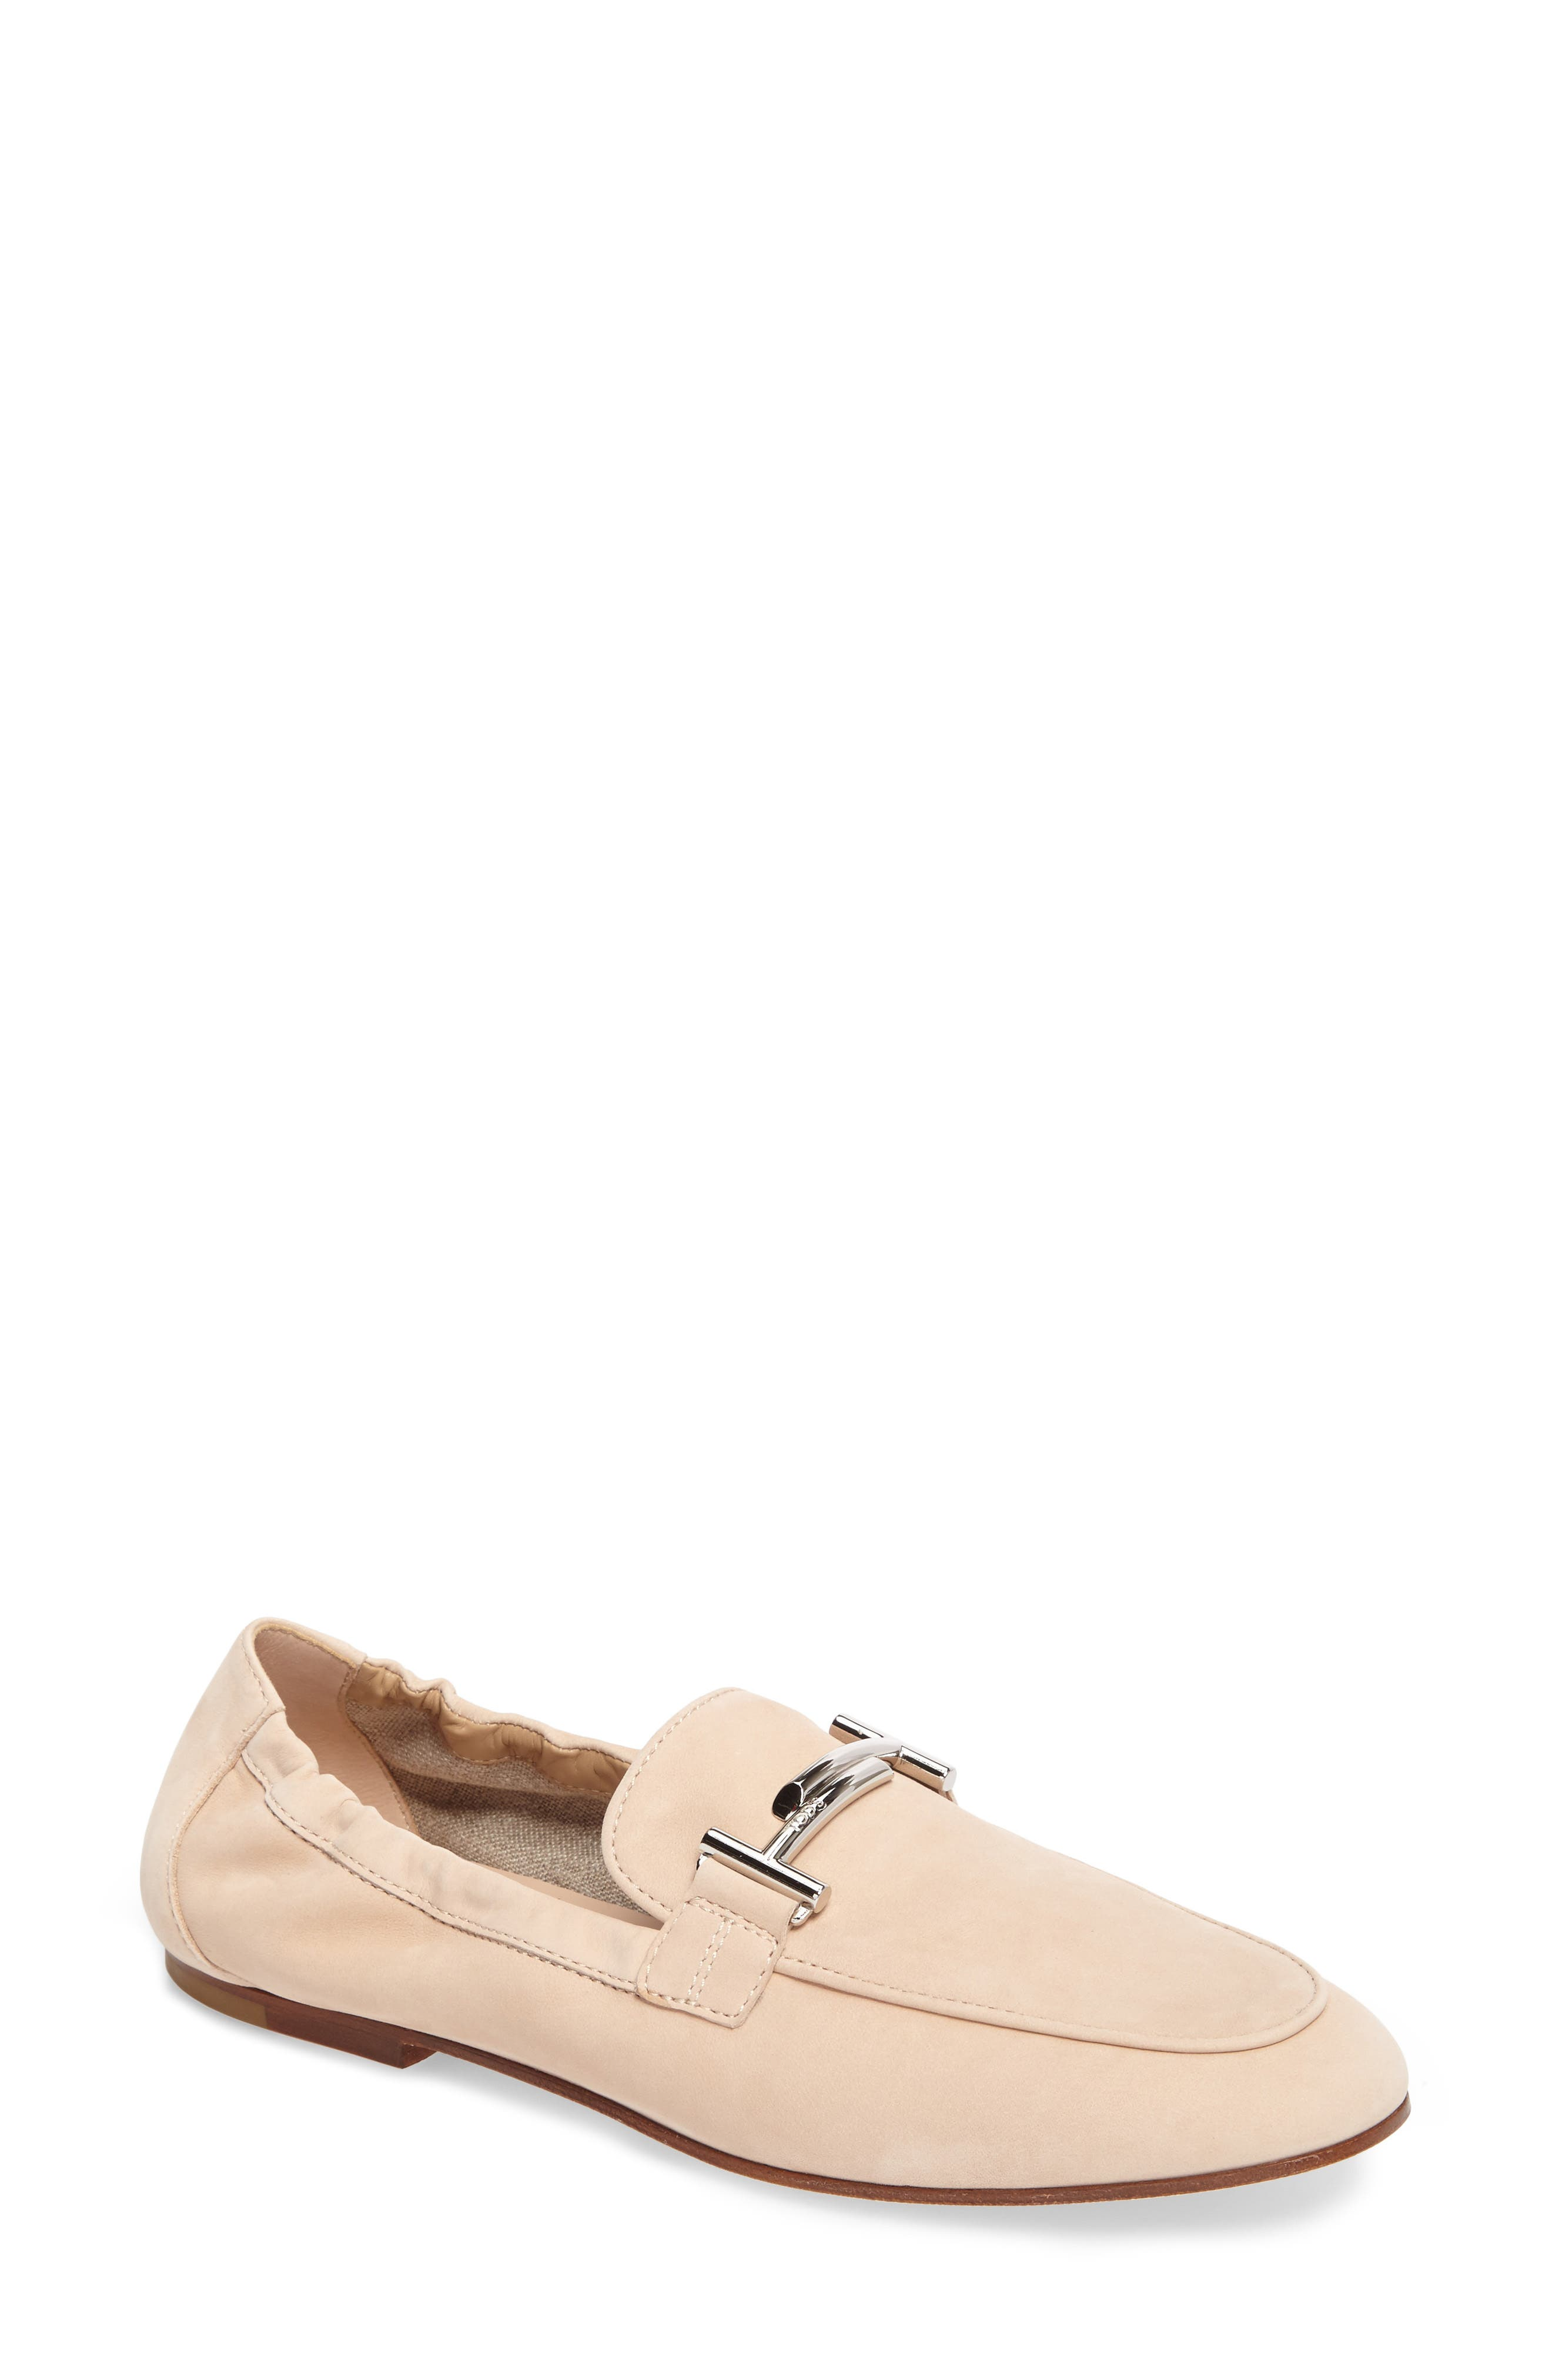 Double T Scrunch Loafer,                             Main thumbnail 3, color,